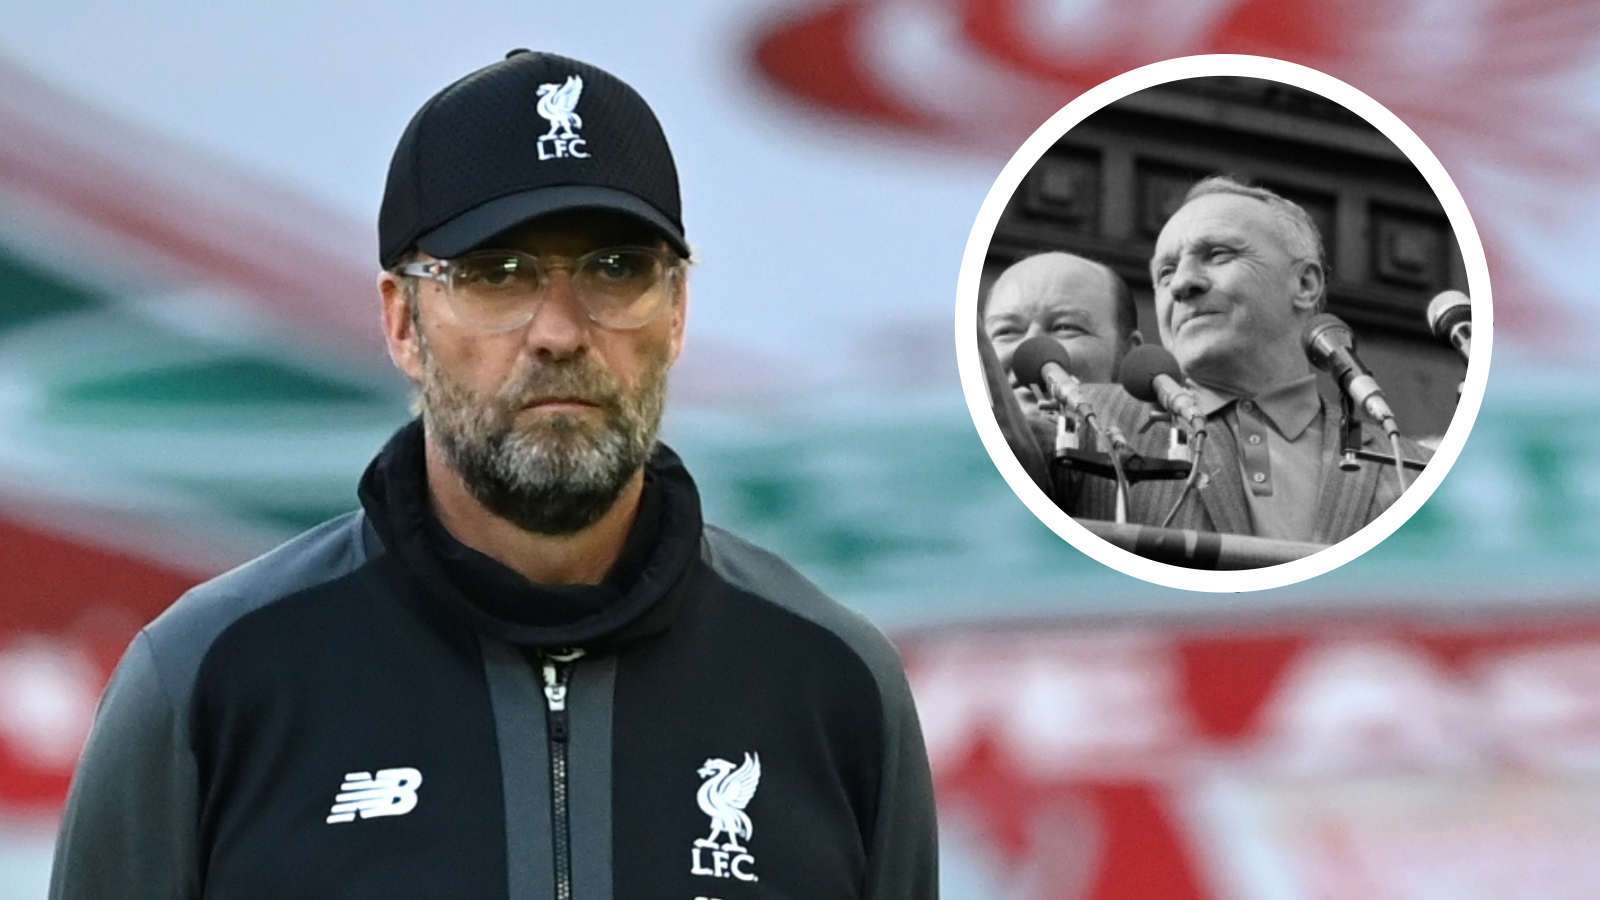 'Klopp has replicated Shankly's Holy Trinity' – Moore hails German coach for uniting Liverpool